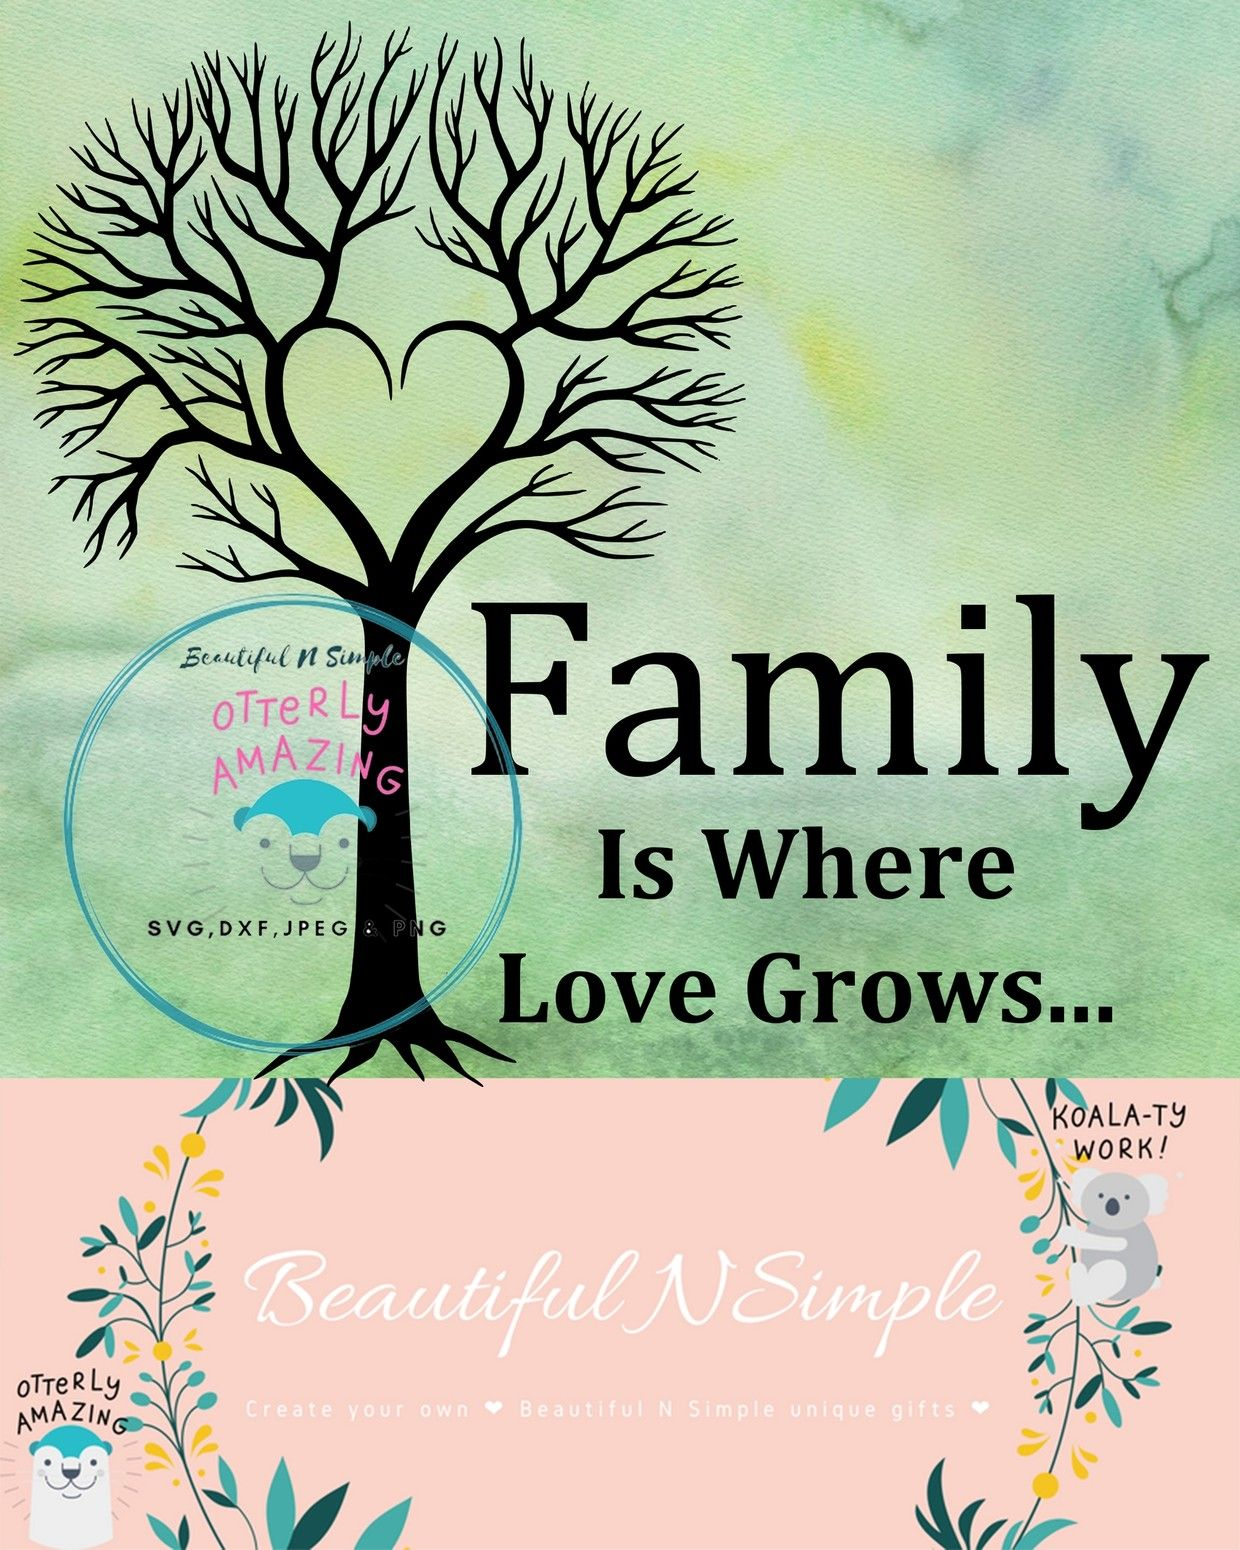 Family Is Where Love Grows Family Tree Svg Dxf File Family Tree Cricut Explore Air Tree Svg